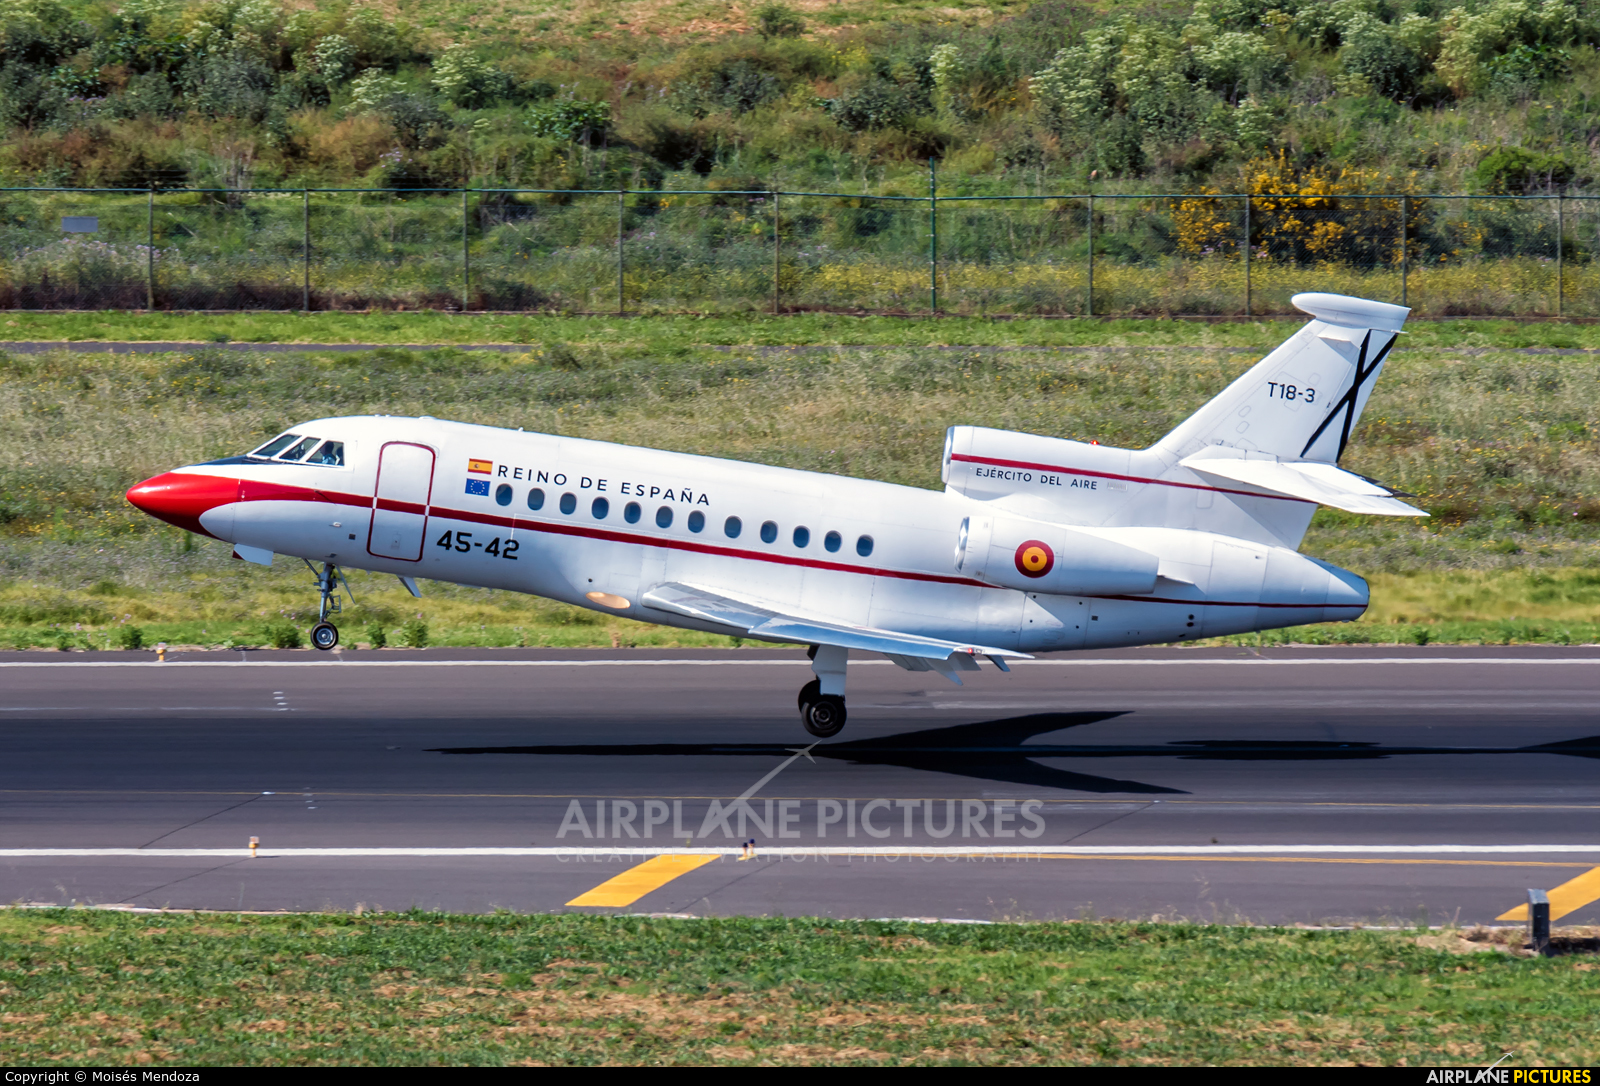 Spain - Air Force T.18-3 aircraft at Tenerife Norte - Los Rodeos